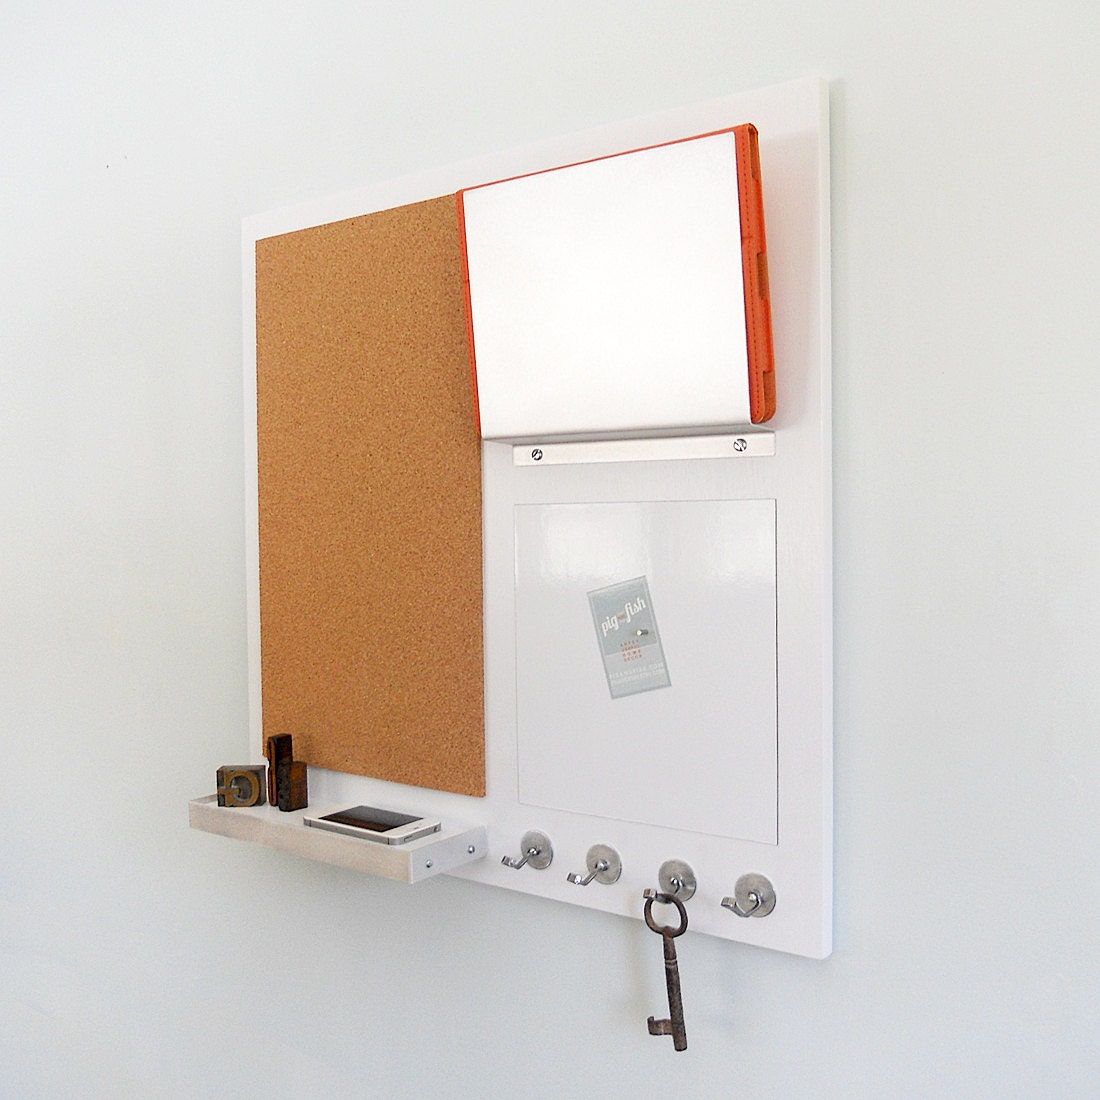 Command center wall mount magnetic white board cork board for Wall mail organizer with cork board